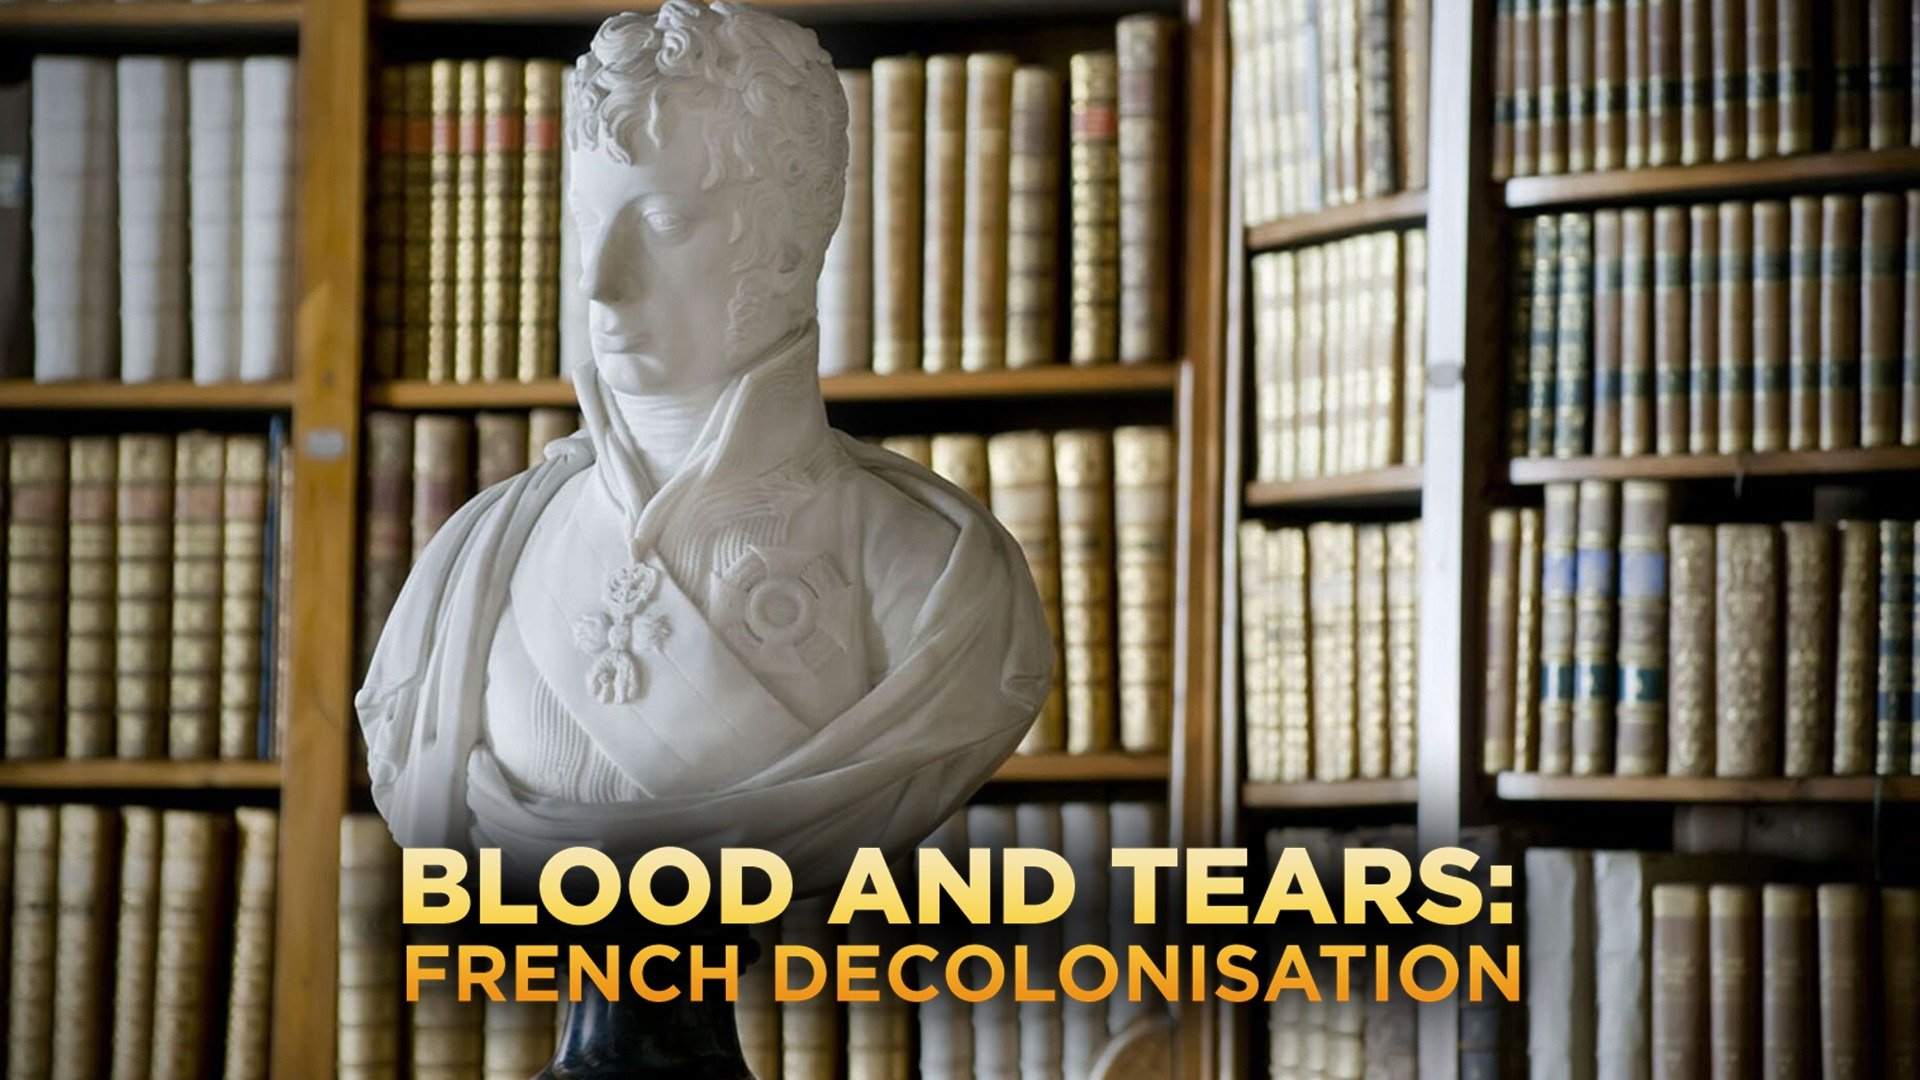 Blood And Tears: French Decolonisation